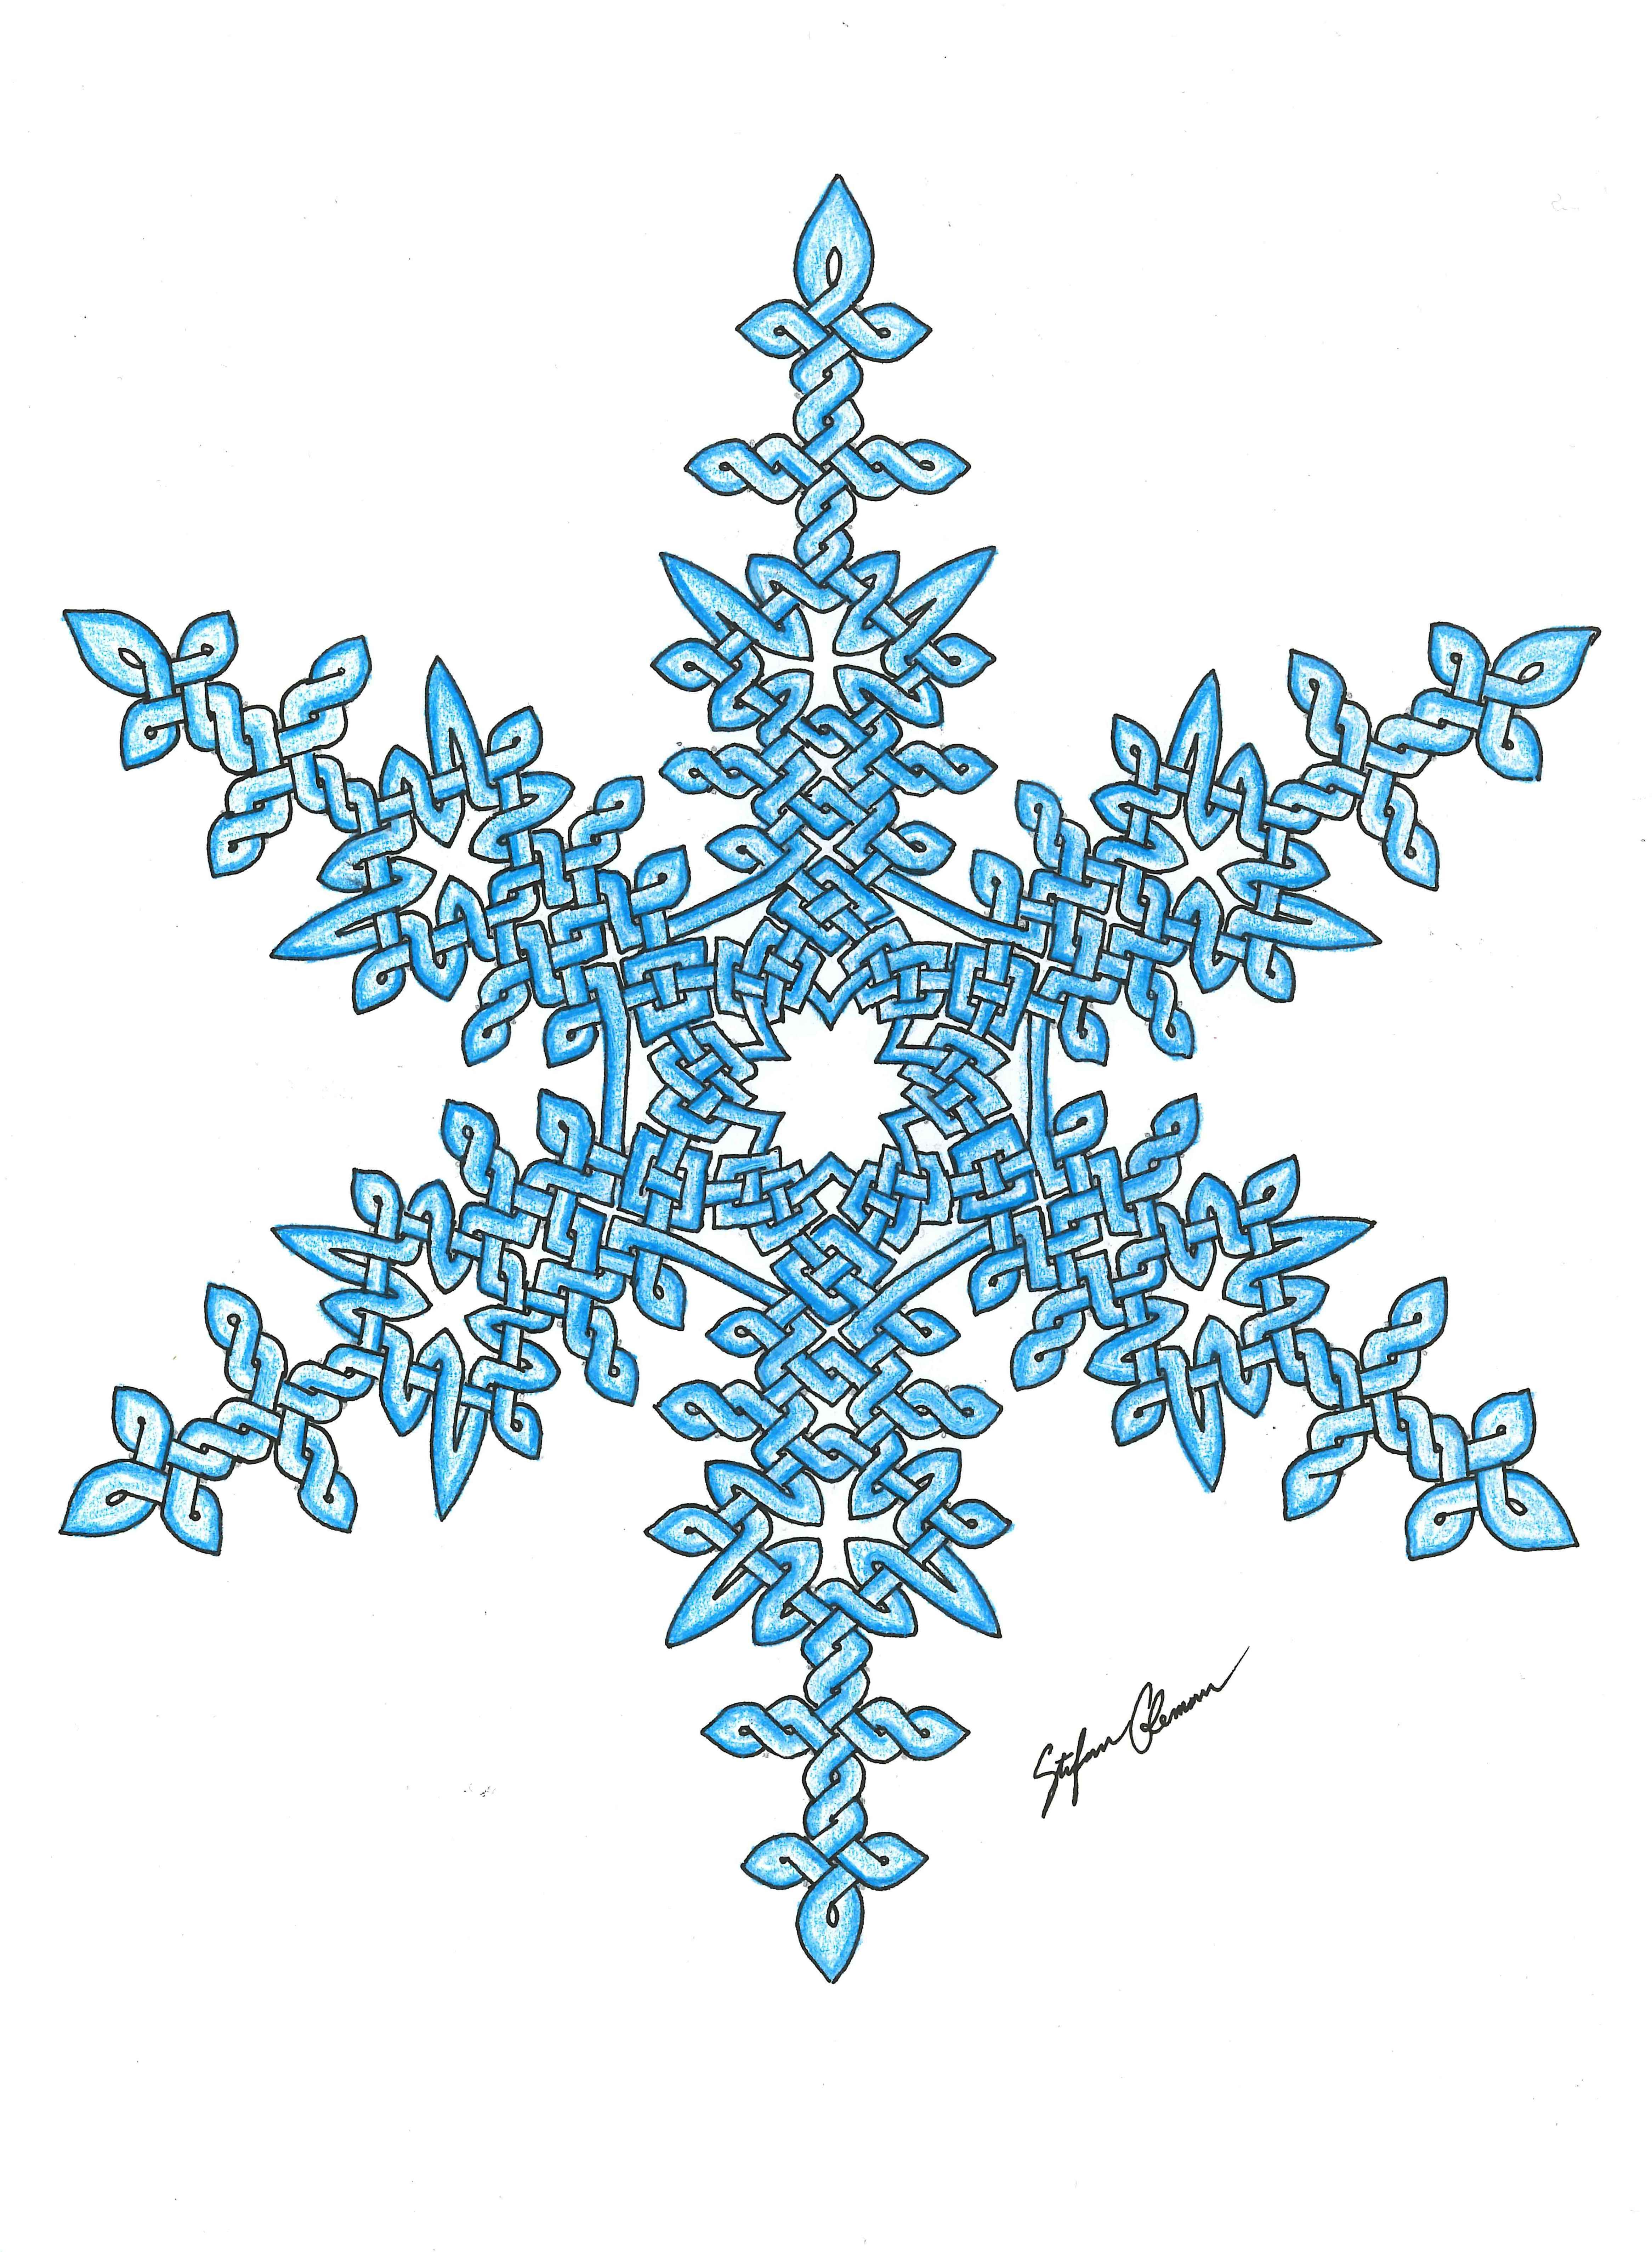 One of my favorite hand-drawn ones, this Celtic knot snowflake is colored very simply, just with a sky-blue colored pencil. I like the simplicity of it all while still having the weave through it.